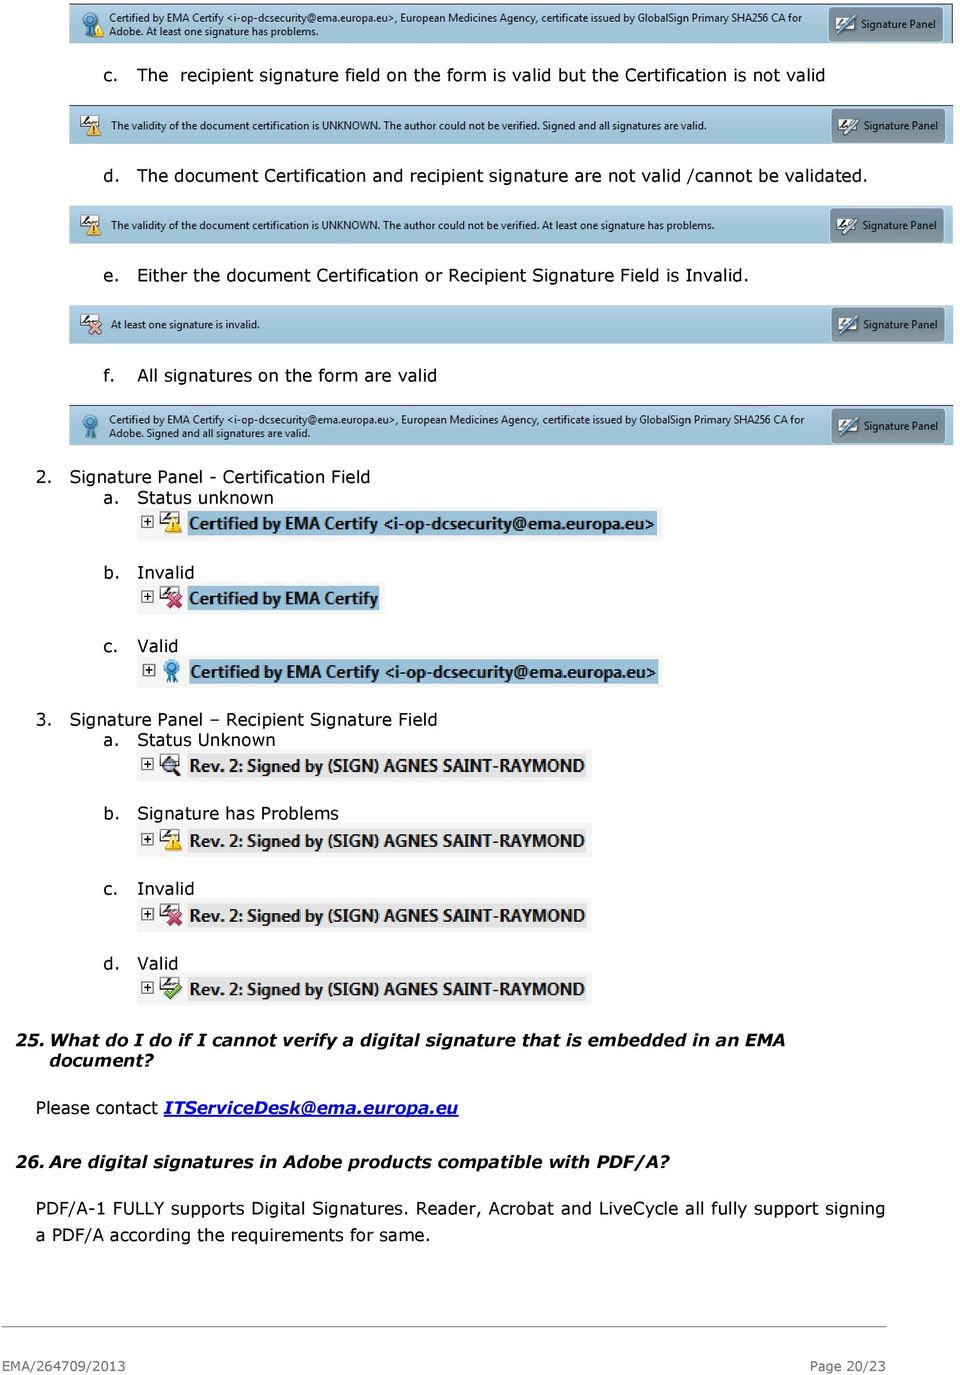 Signature Panel Recipient Signature Field a. Status Unknown b. Signature has Problems c. Invalid d. Valid 25. What do I do if I cannot verify a digital signature that is embedded in an EMA document?